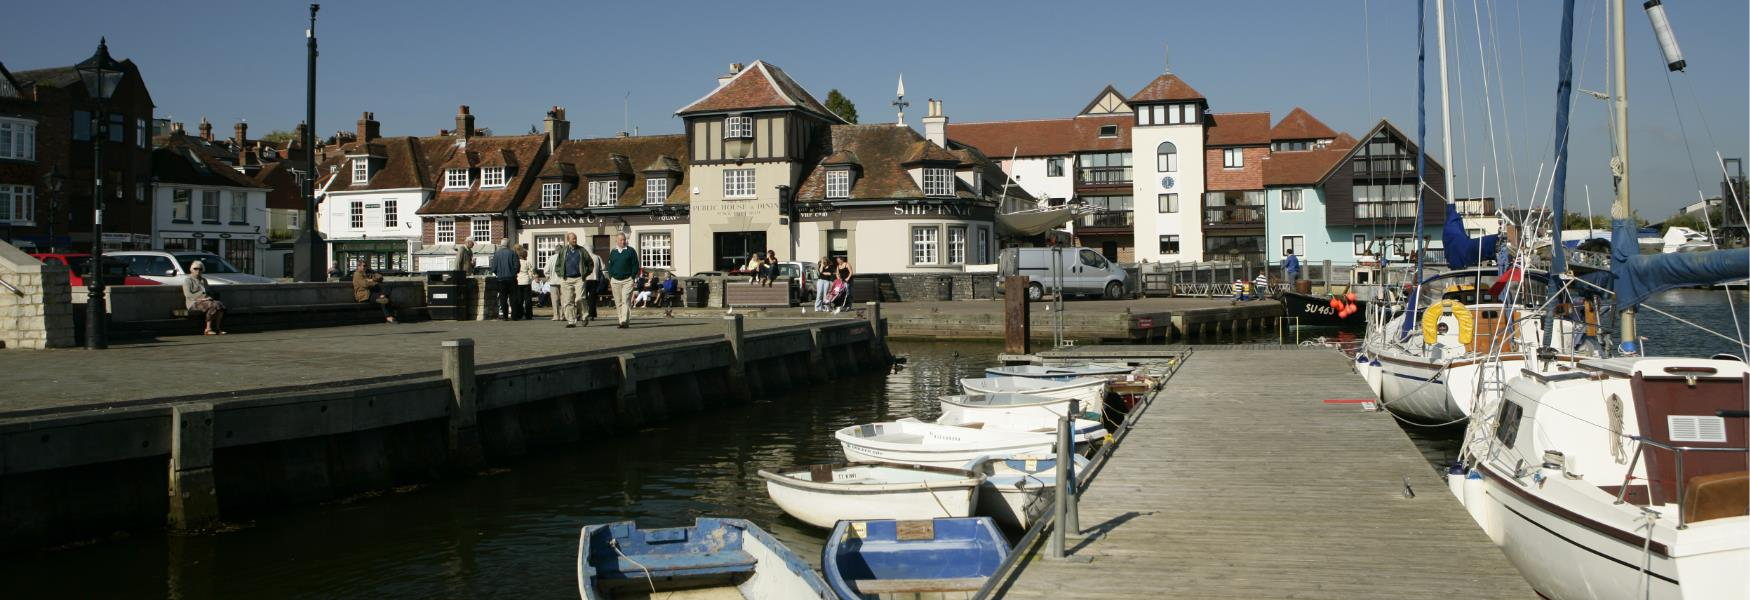 Boats at Lymington Quay in the New Forest